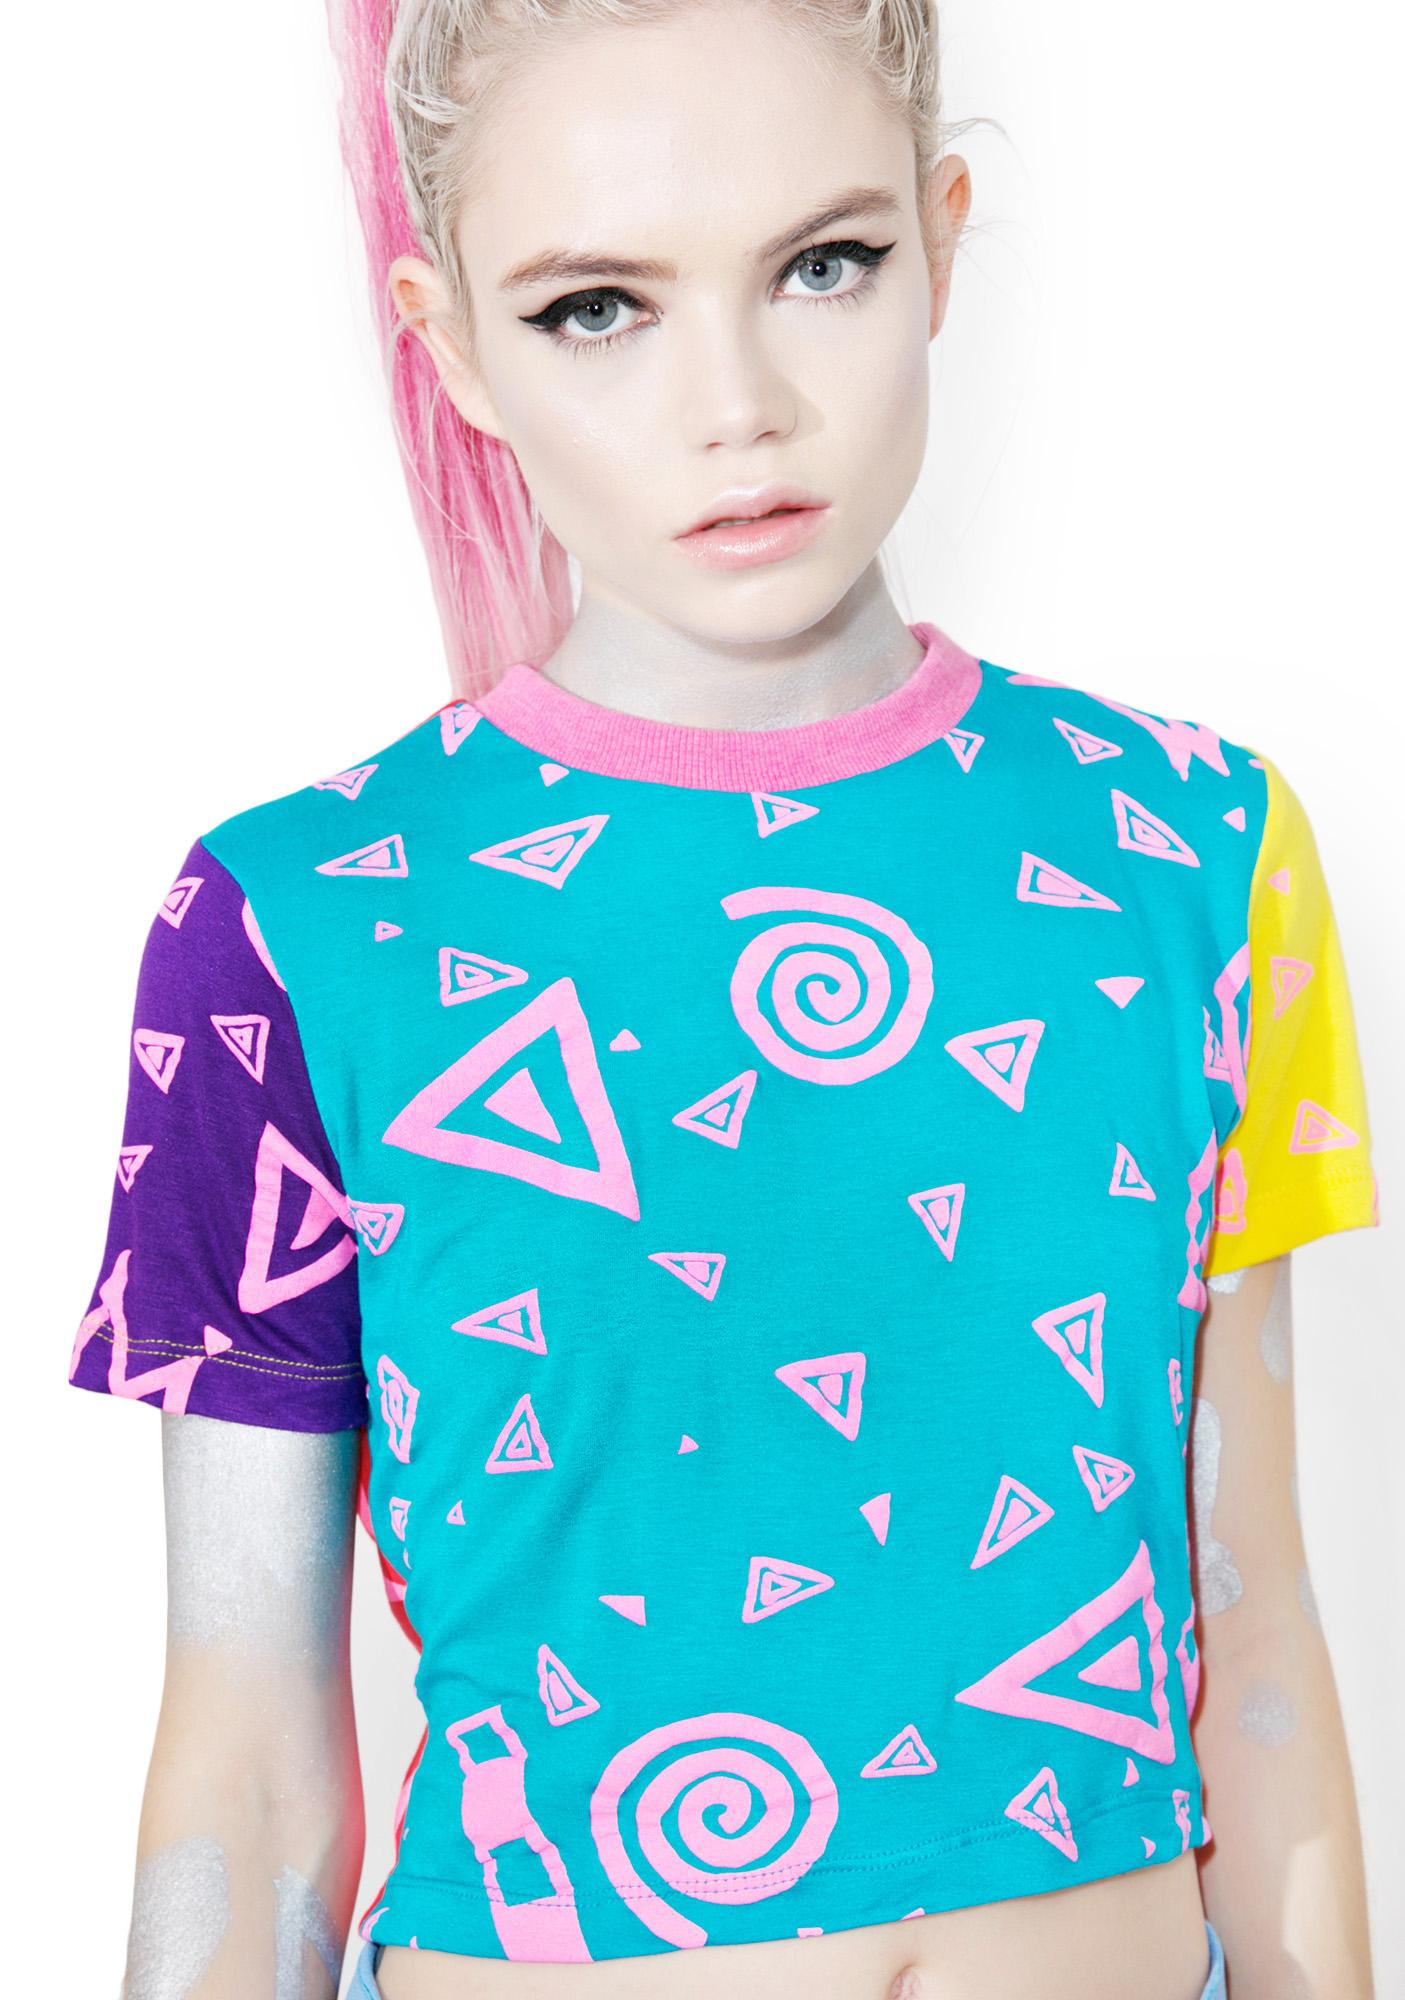 Mamadoux Art School Colorblock Crop Top